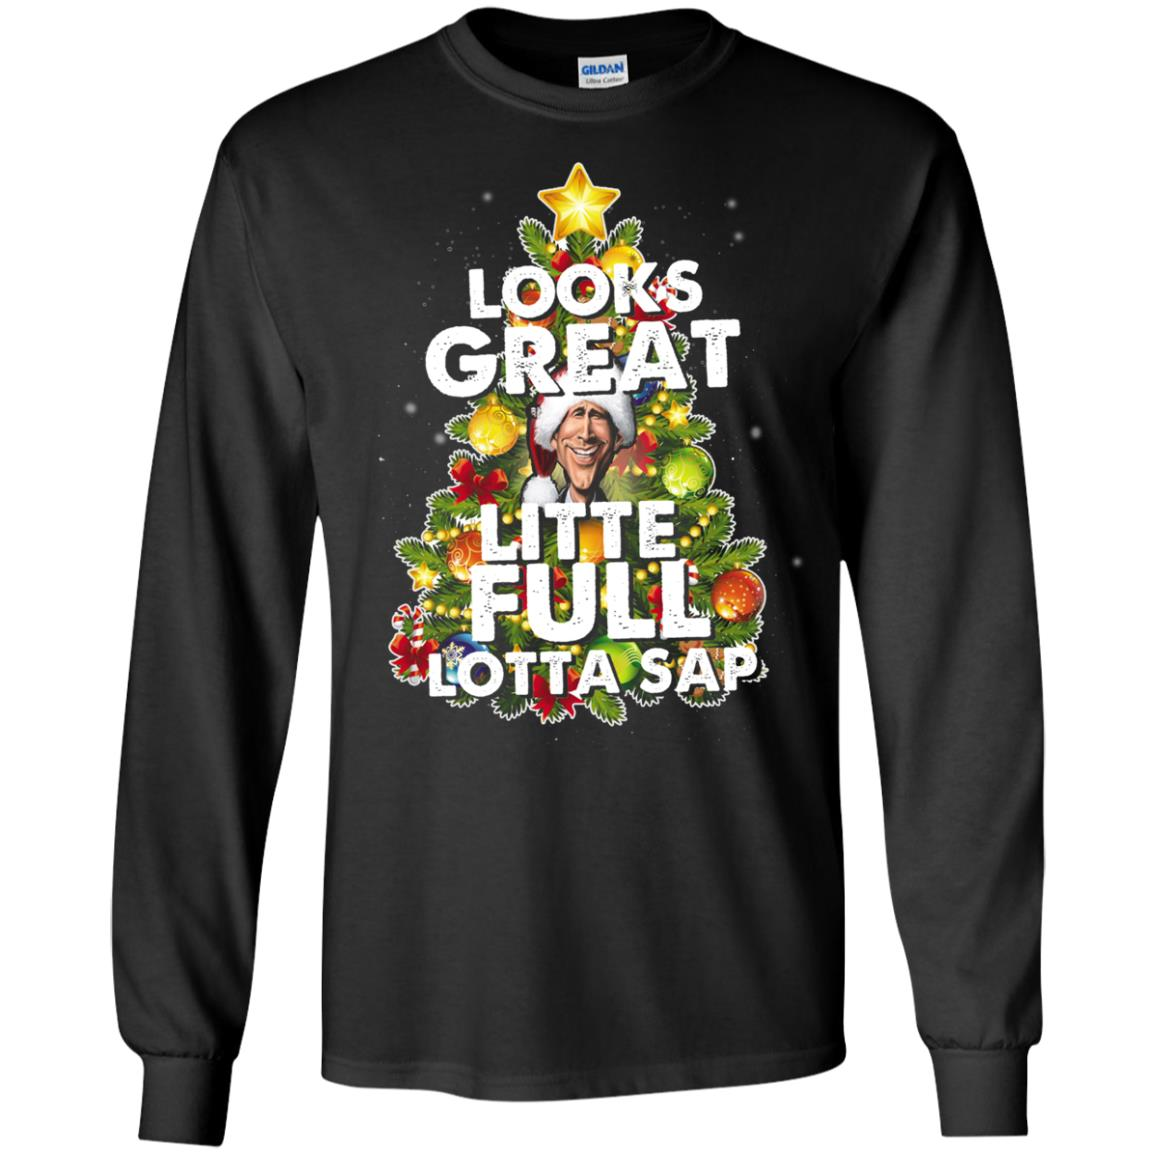 image 2483 - Looks great little full lotta sap ugly Christmas sweater, hoodie